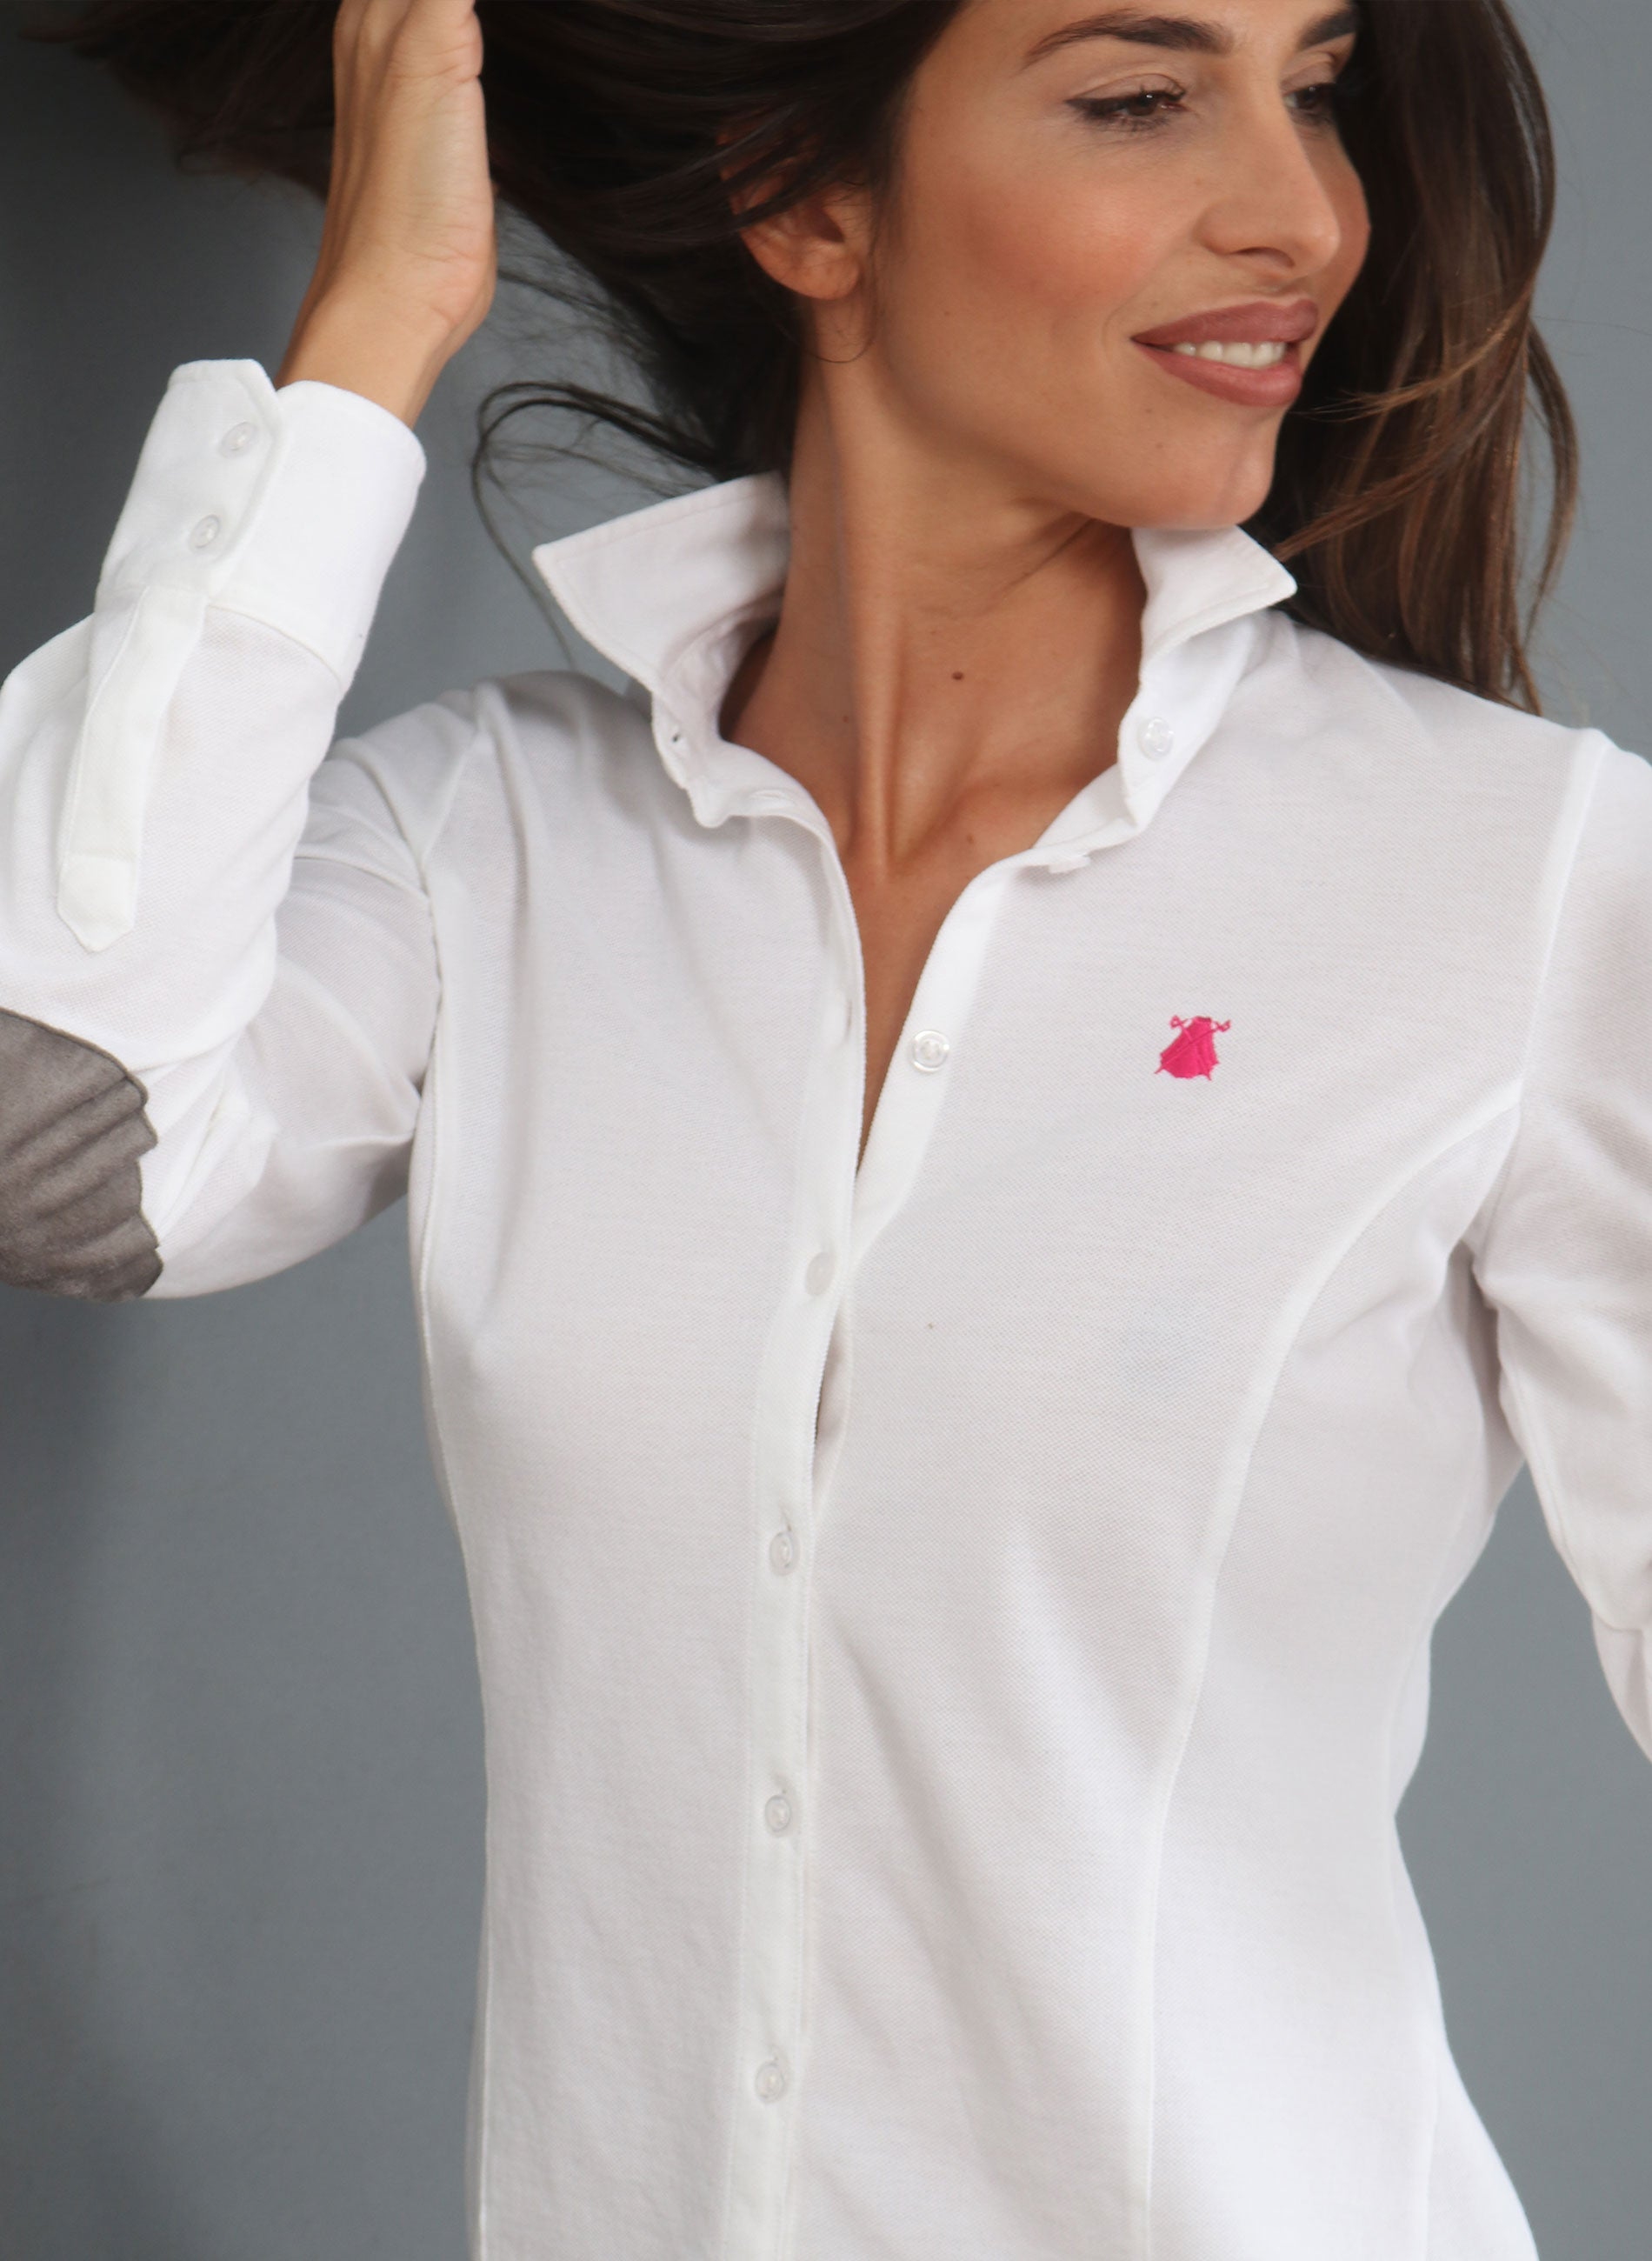 White Shirt Piqué Elbow Patches Woman